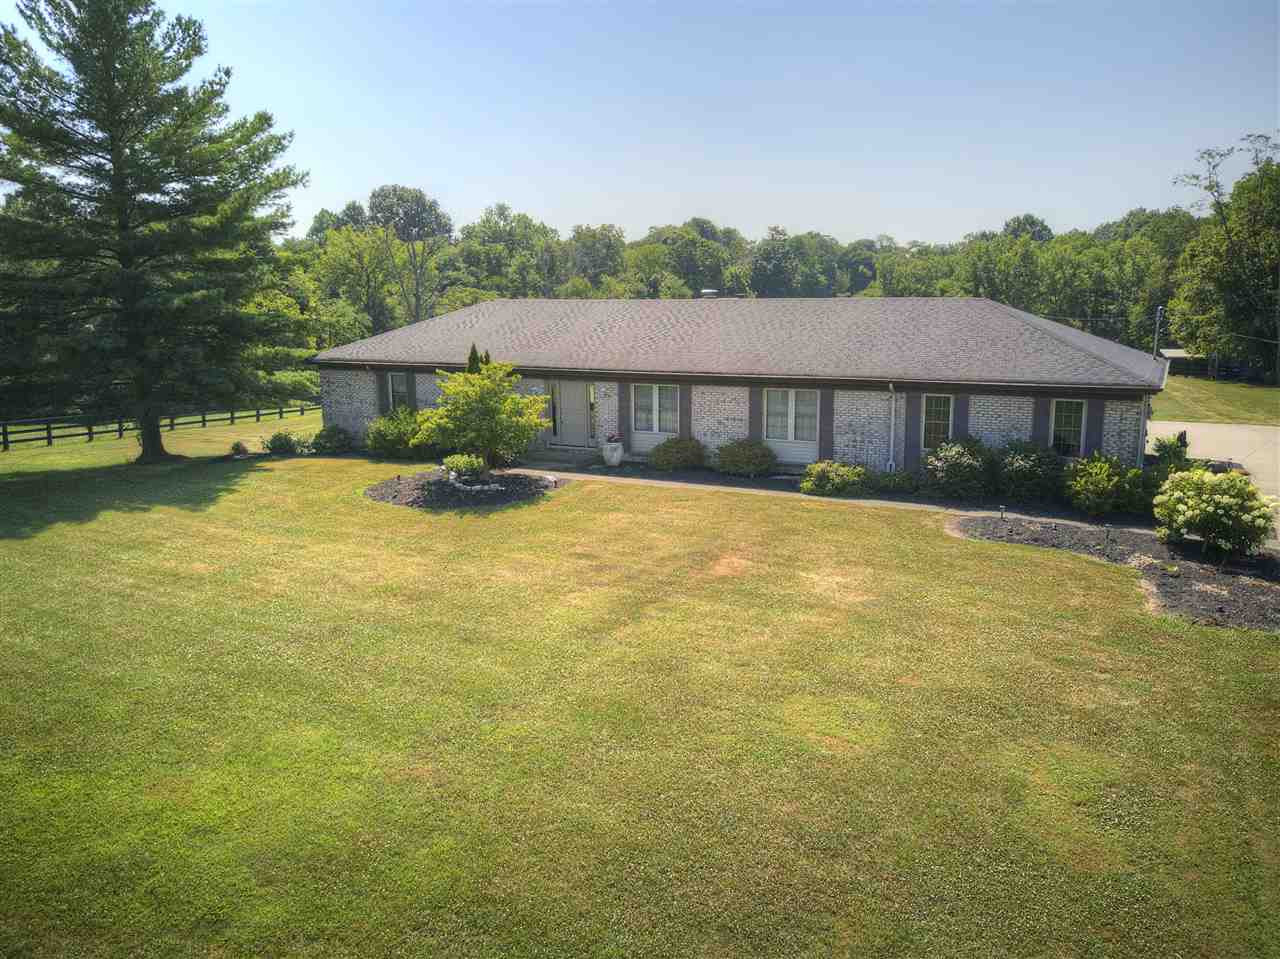 Photo 1 for 7260 East Bend Rd Burlington, KY 41005